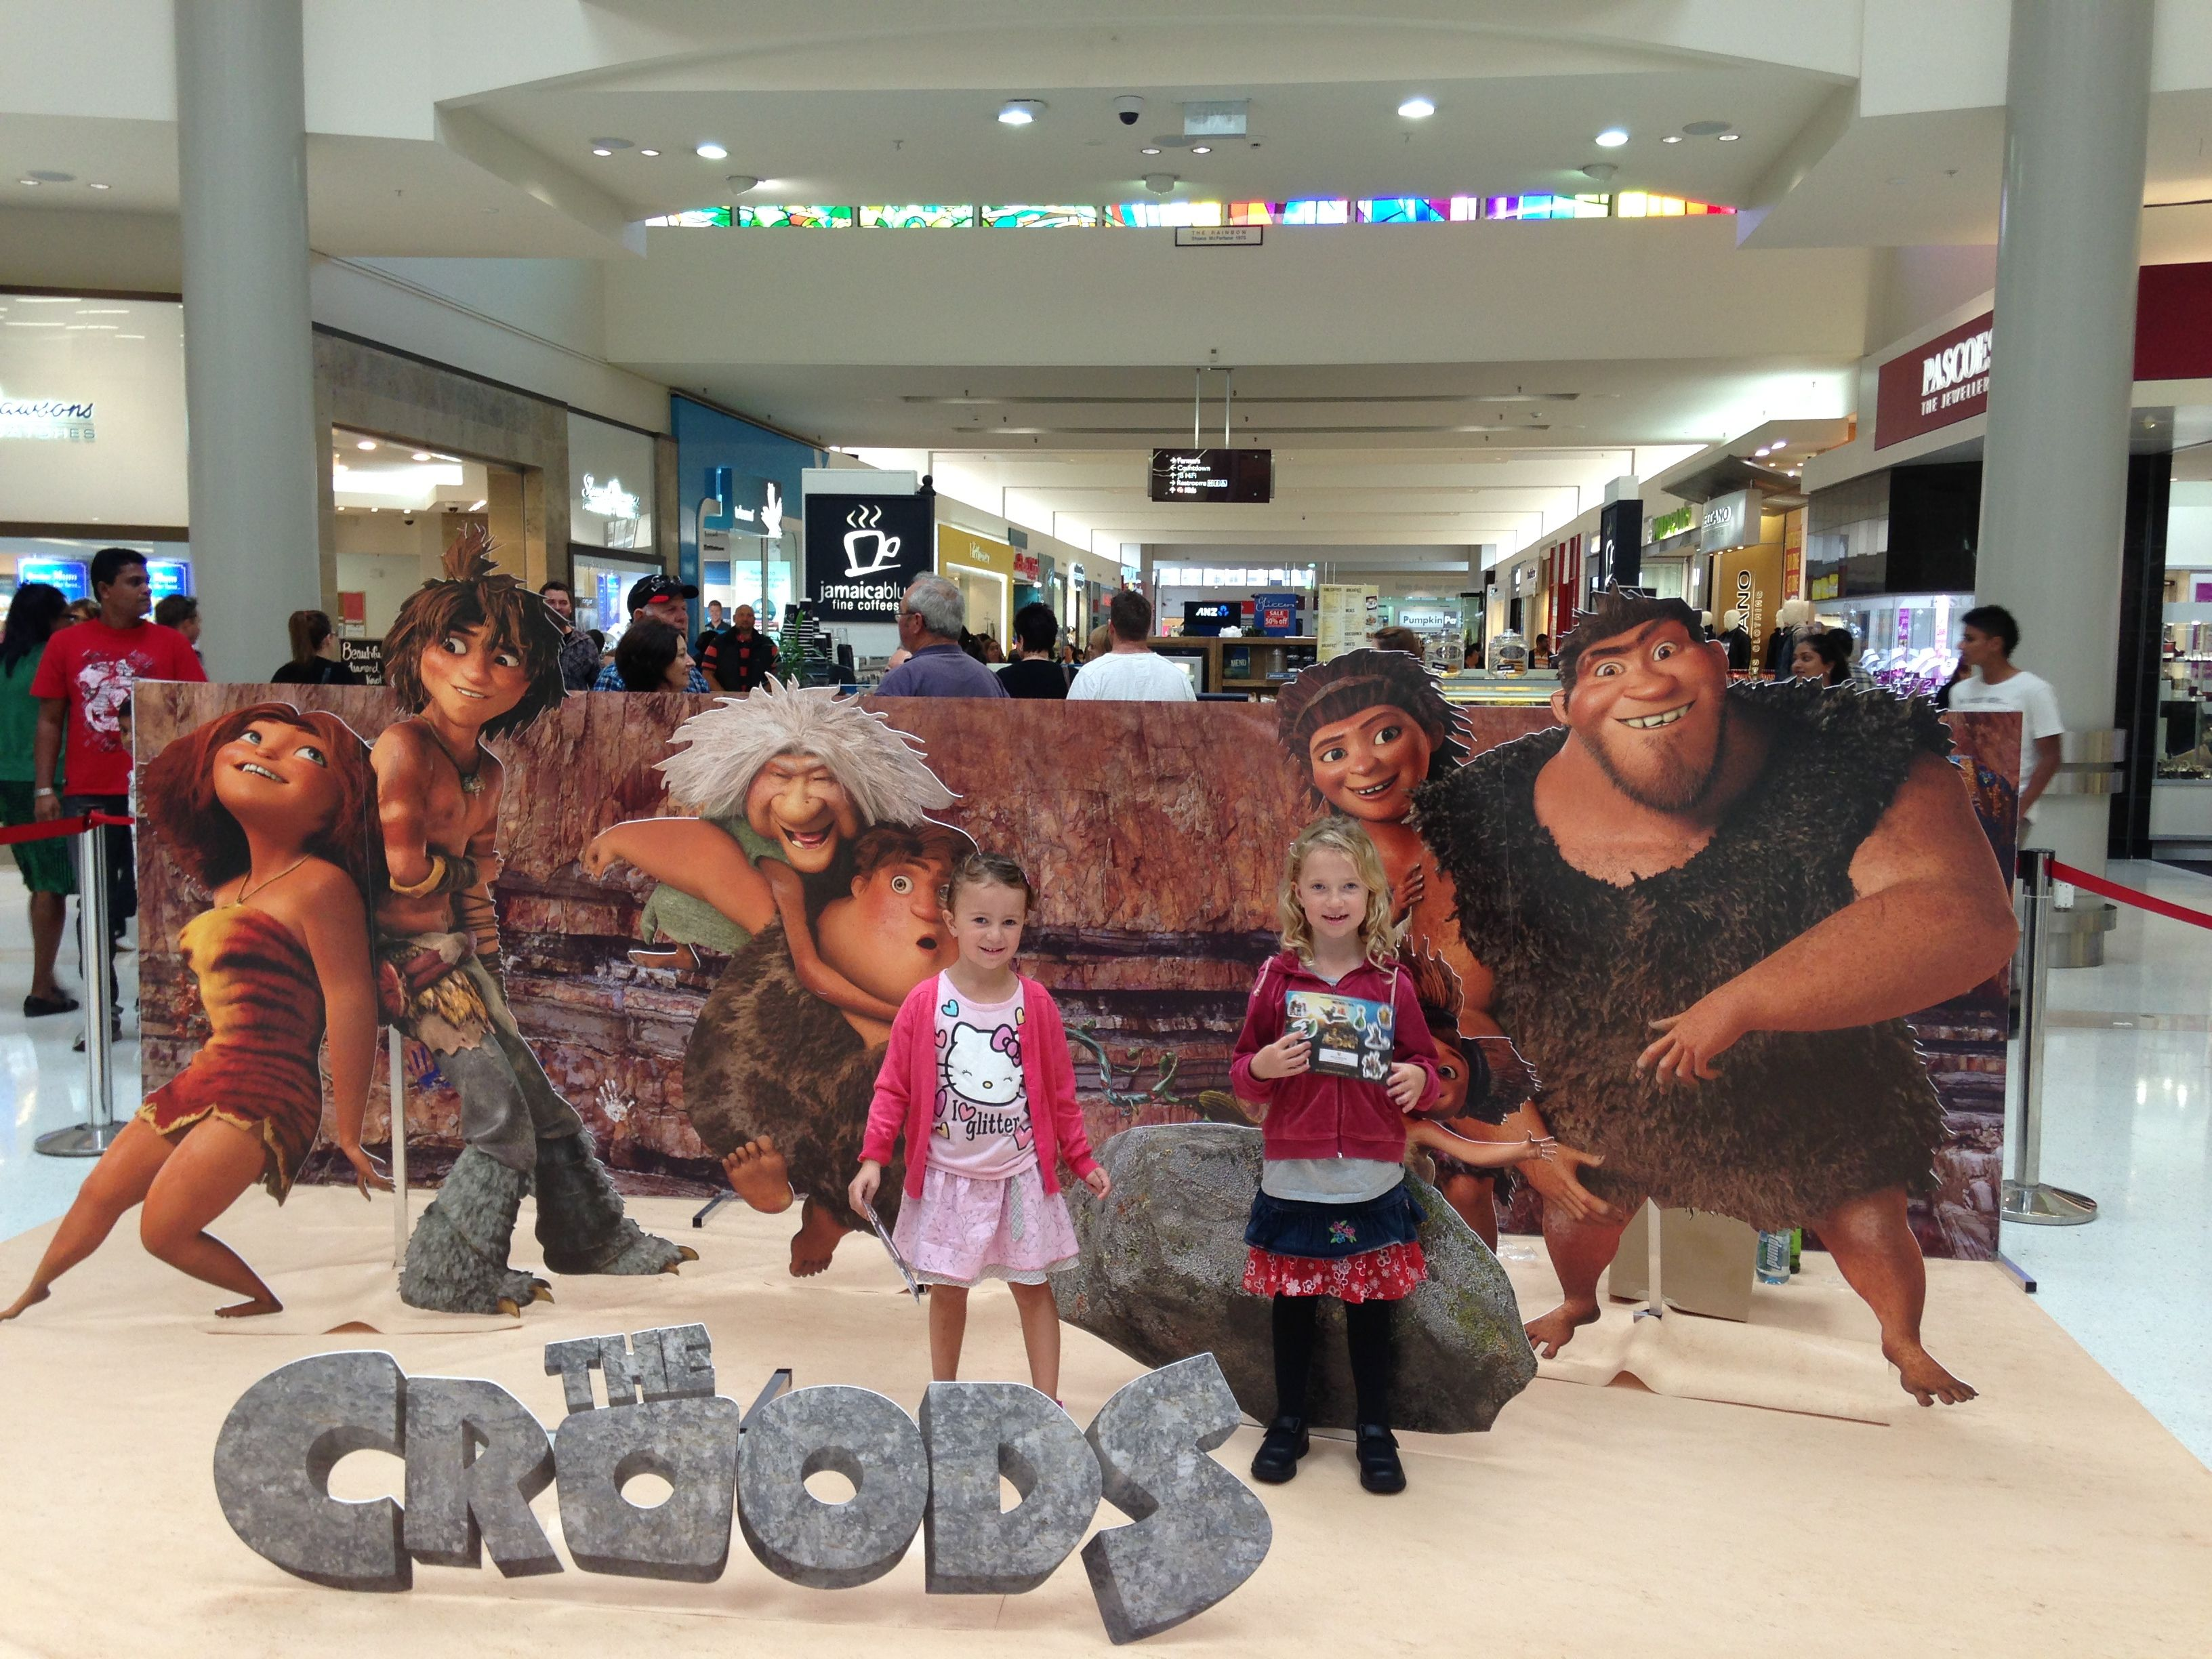 At the movies to watch the Croods with the kids